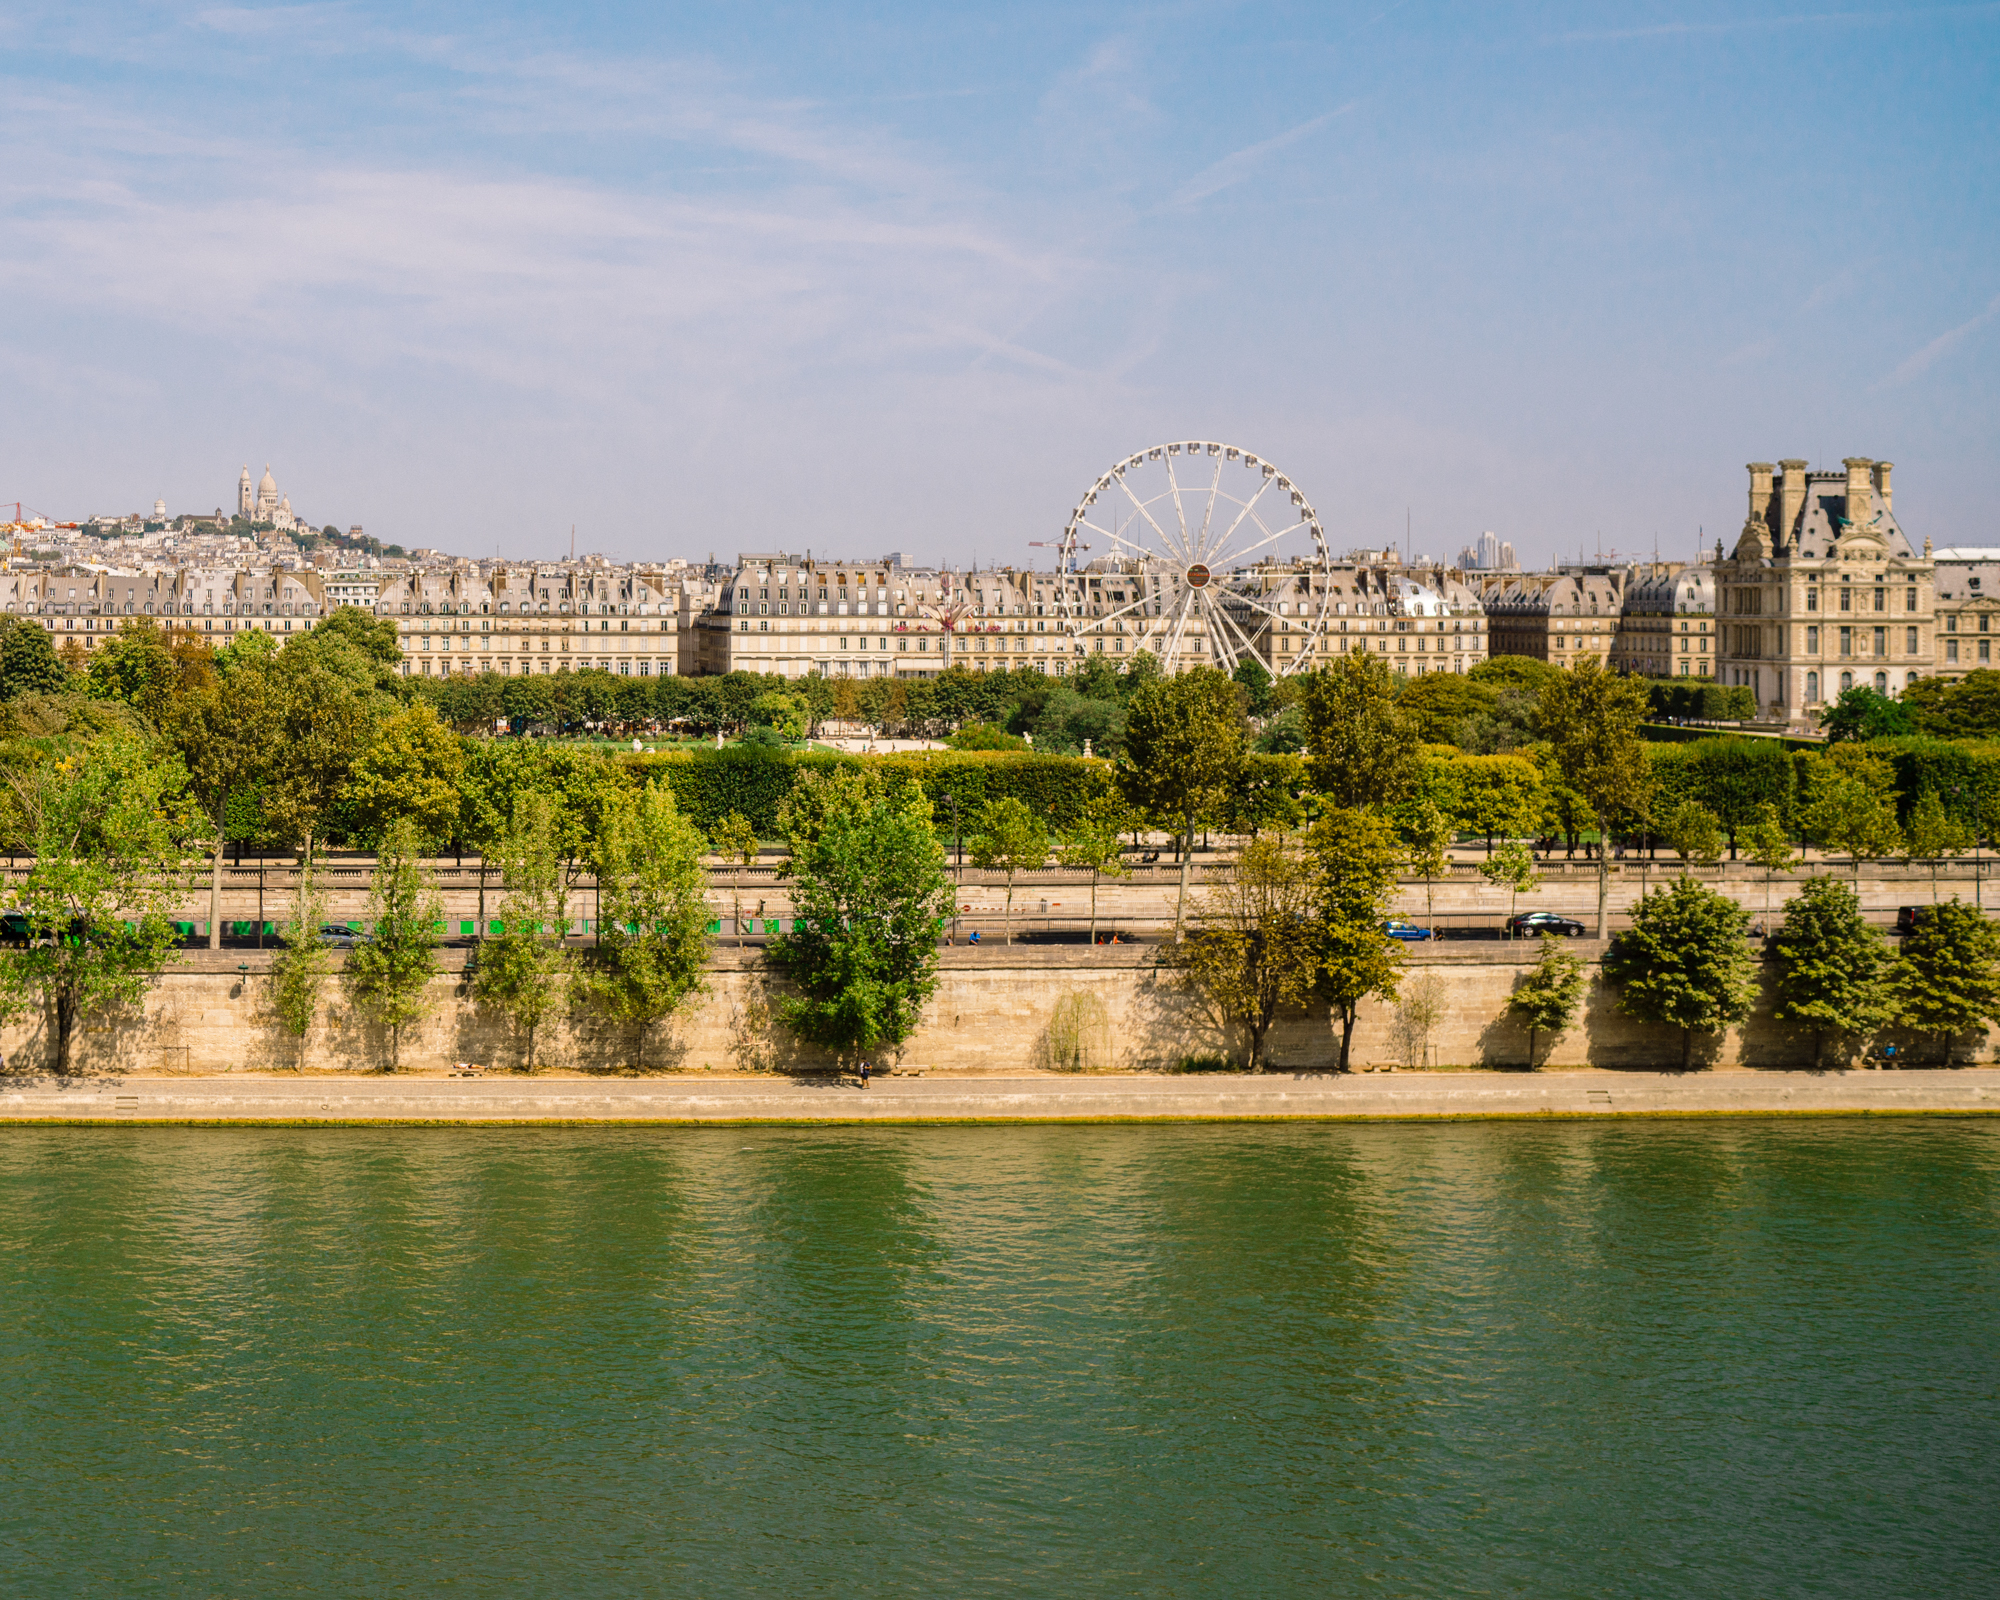 The view from Musee D'Orsay in Paris